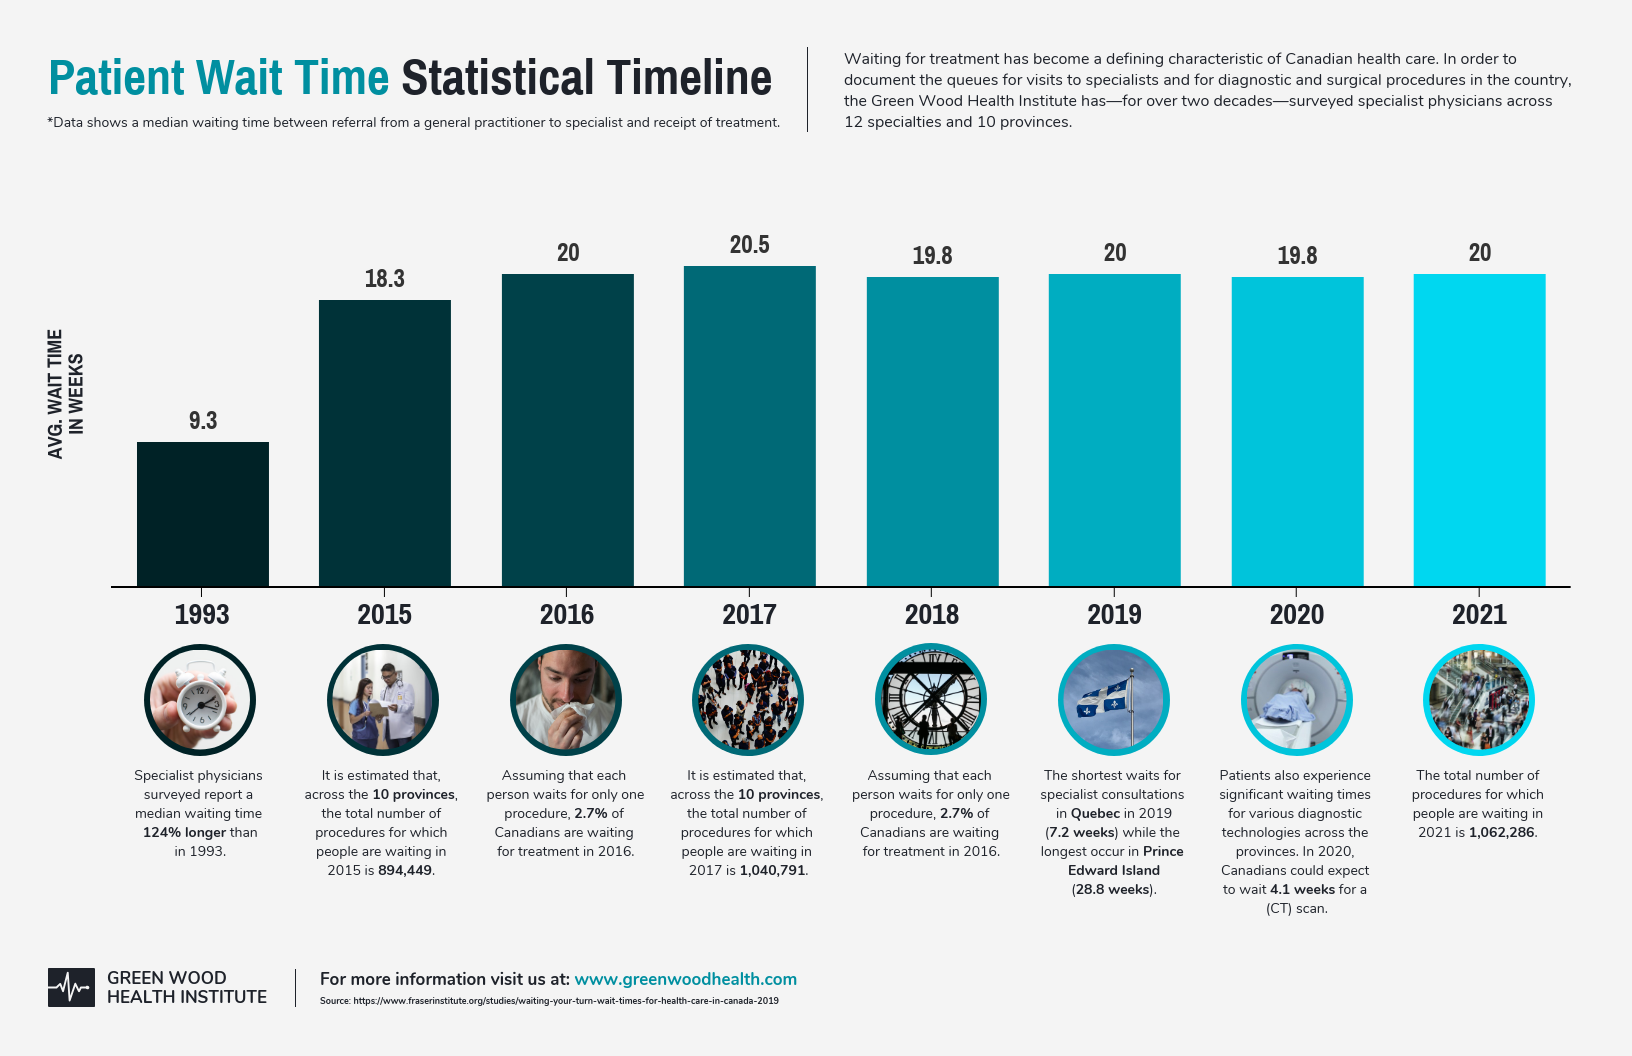 Patient Wait Time Statistical Timeline Infographic Template